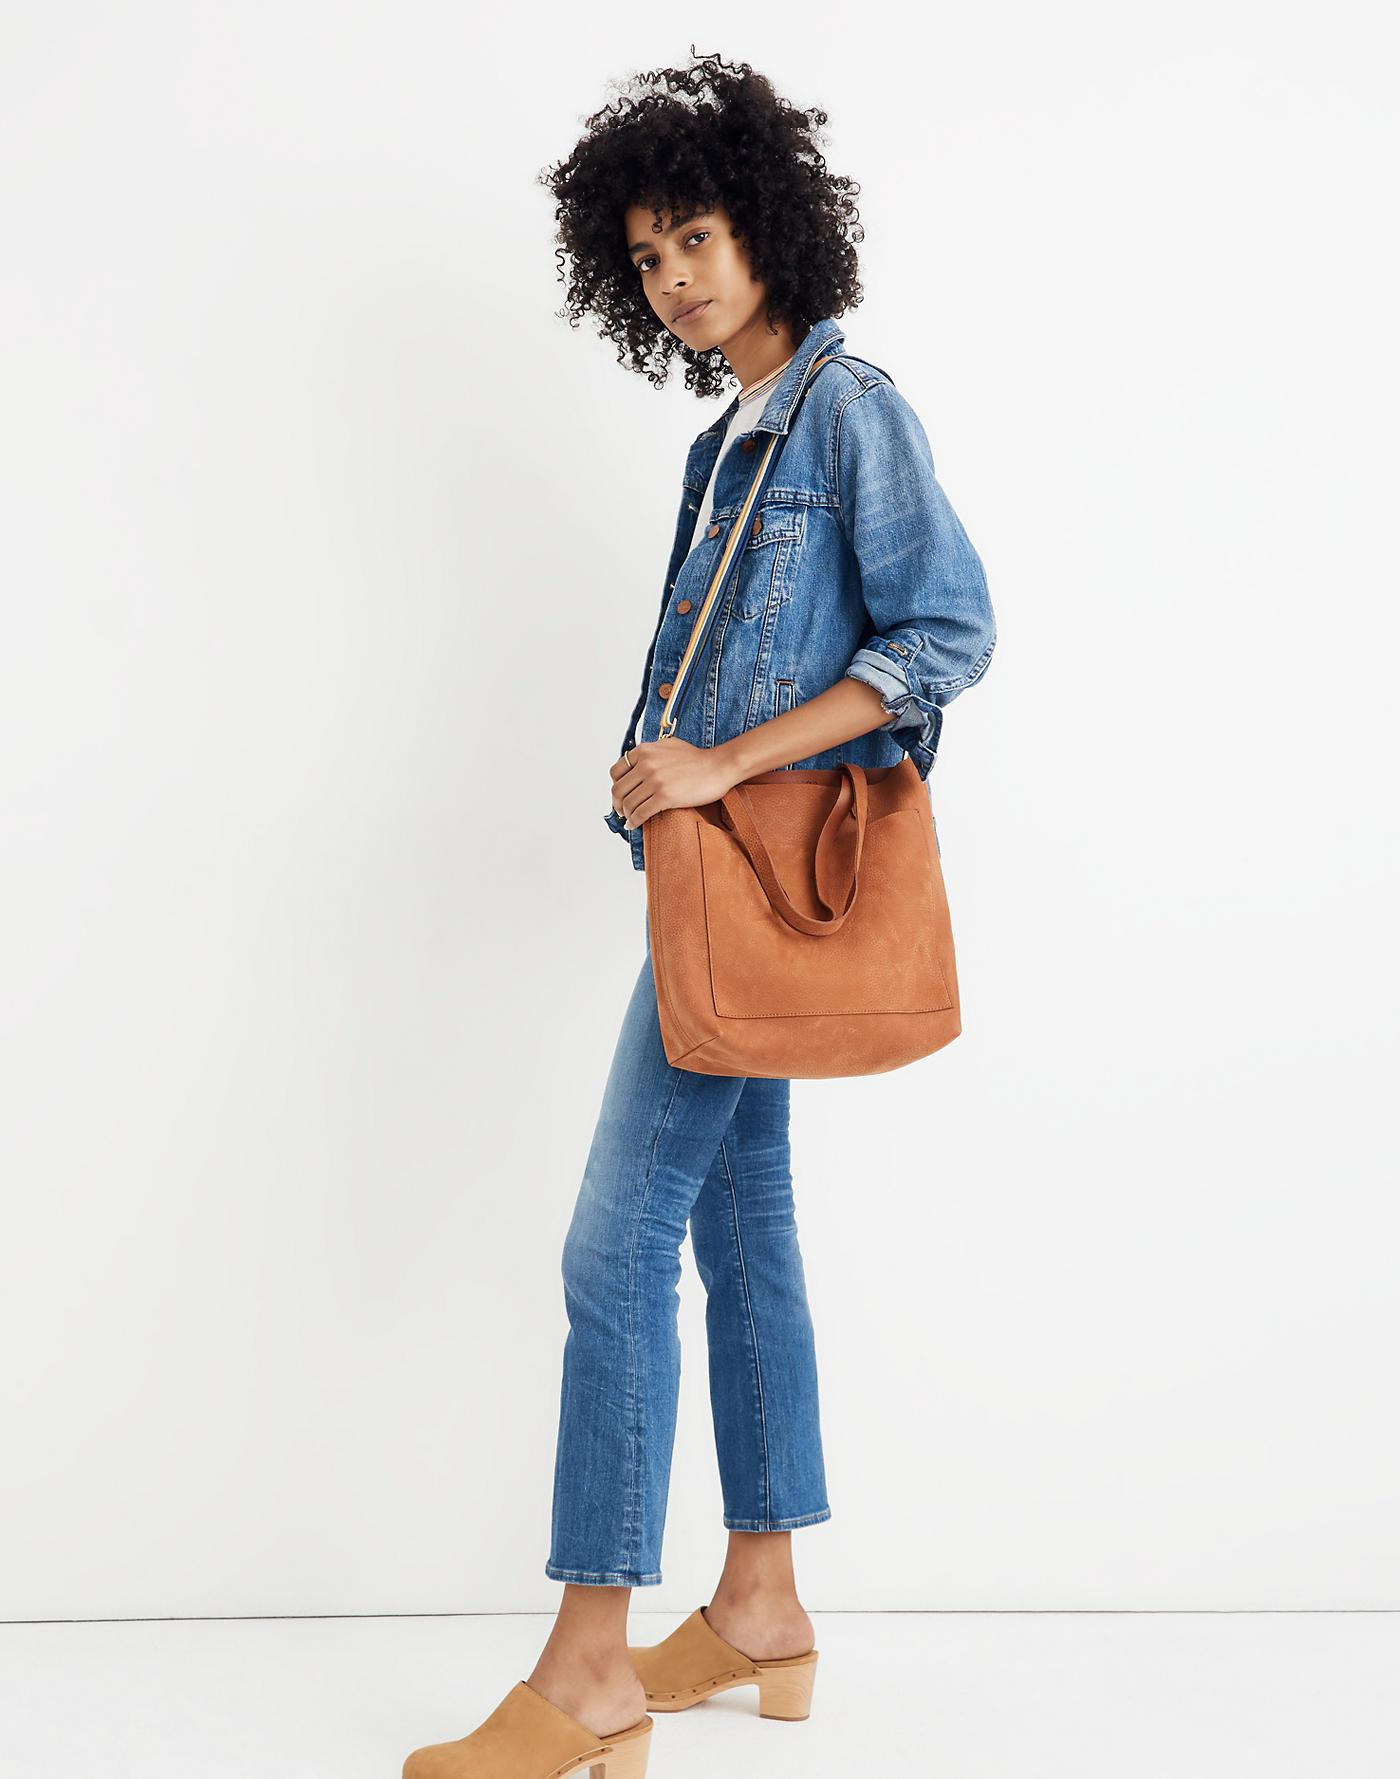 e35621314 Madewell The Medium Transport Tote In Nubuck Leather: Rainbow Strap Edition  - Lyst